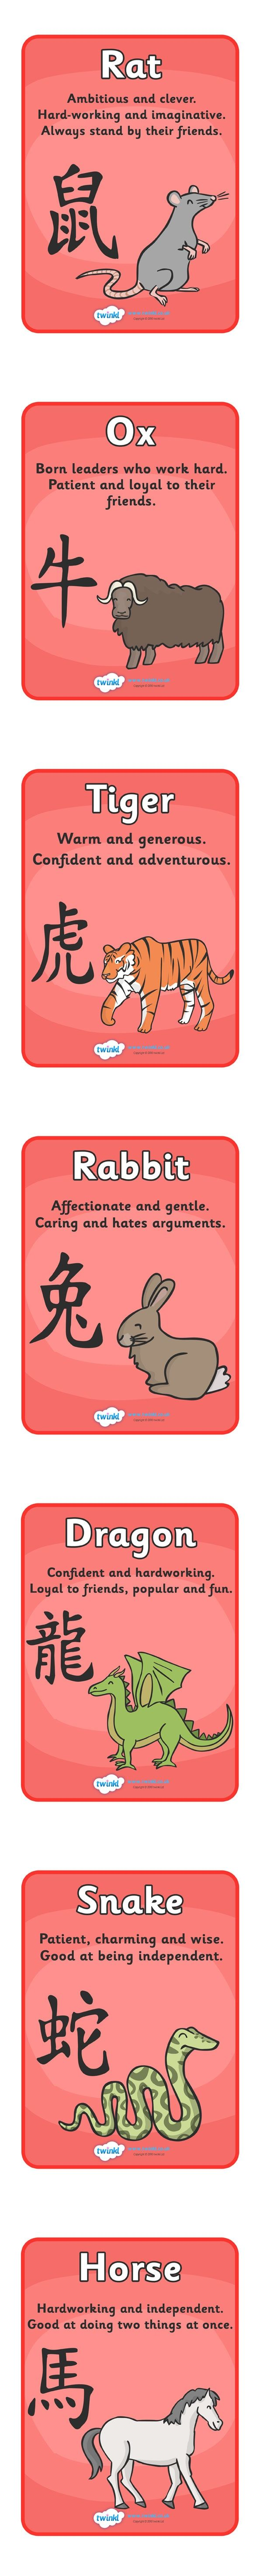 Chinese New Year Zodiac Animal Characteristics  - Pop over to our site at http://www.twinkl.co.uk and check out our lovely Chinese New Year primary teaching resources! chinese new year, animal characteristics, zodiac characterisitcs #chinese_new_year #teaching_resources